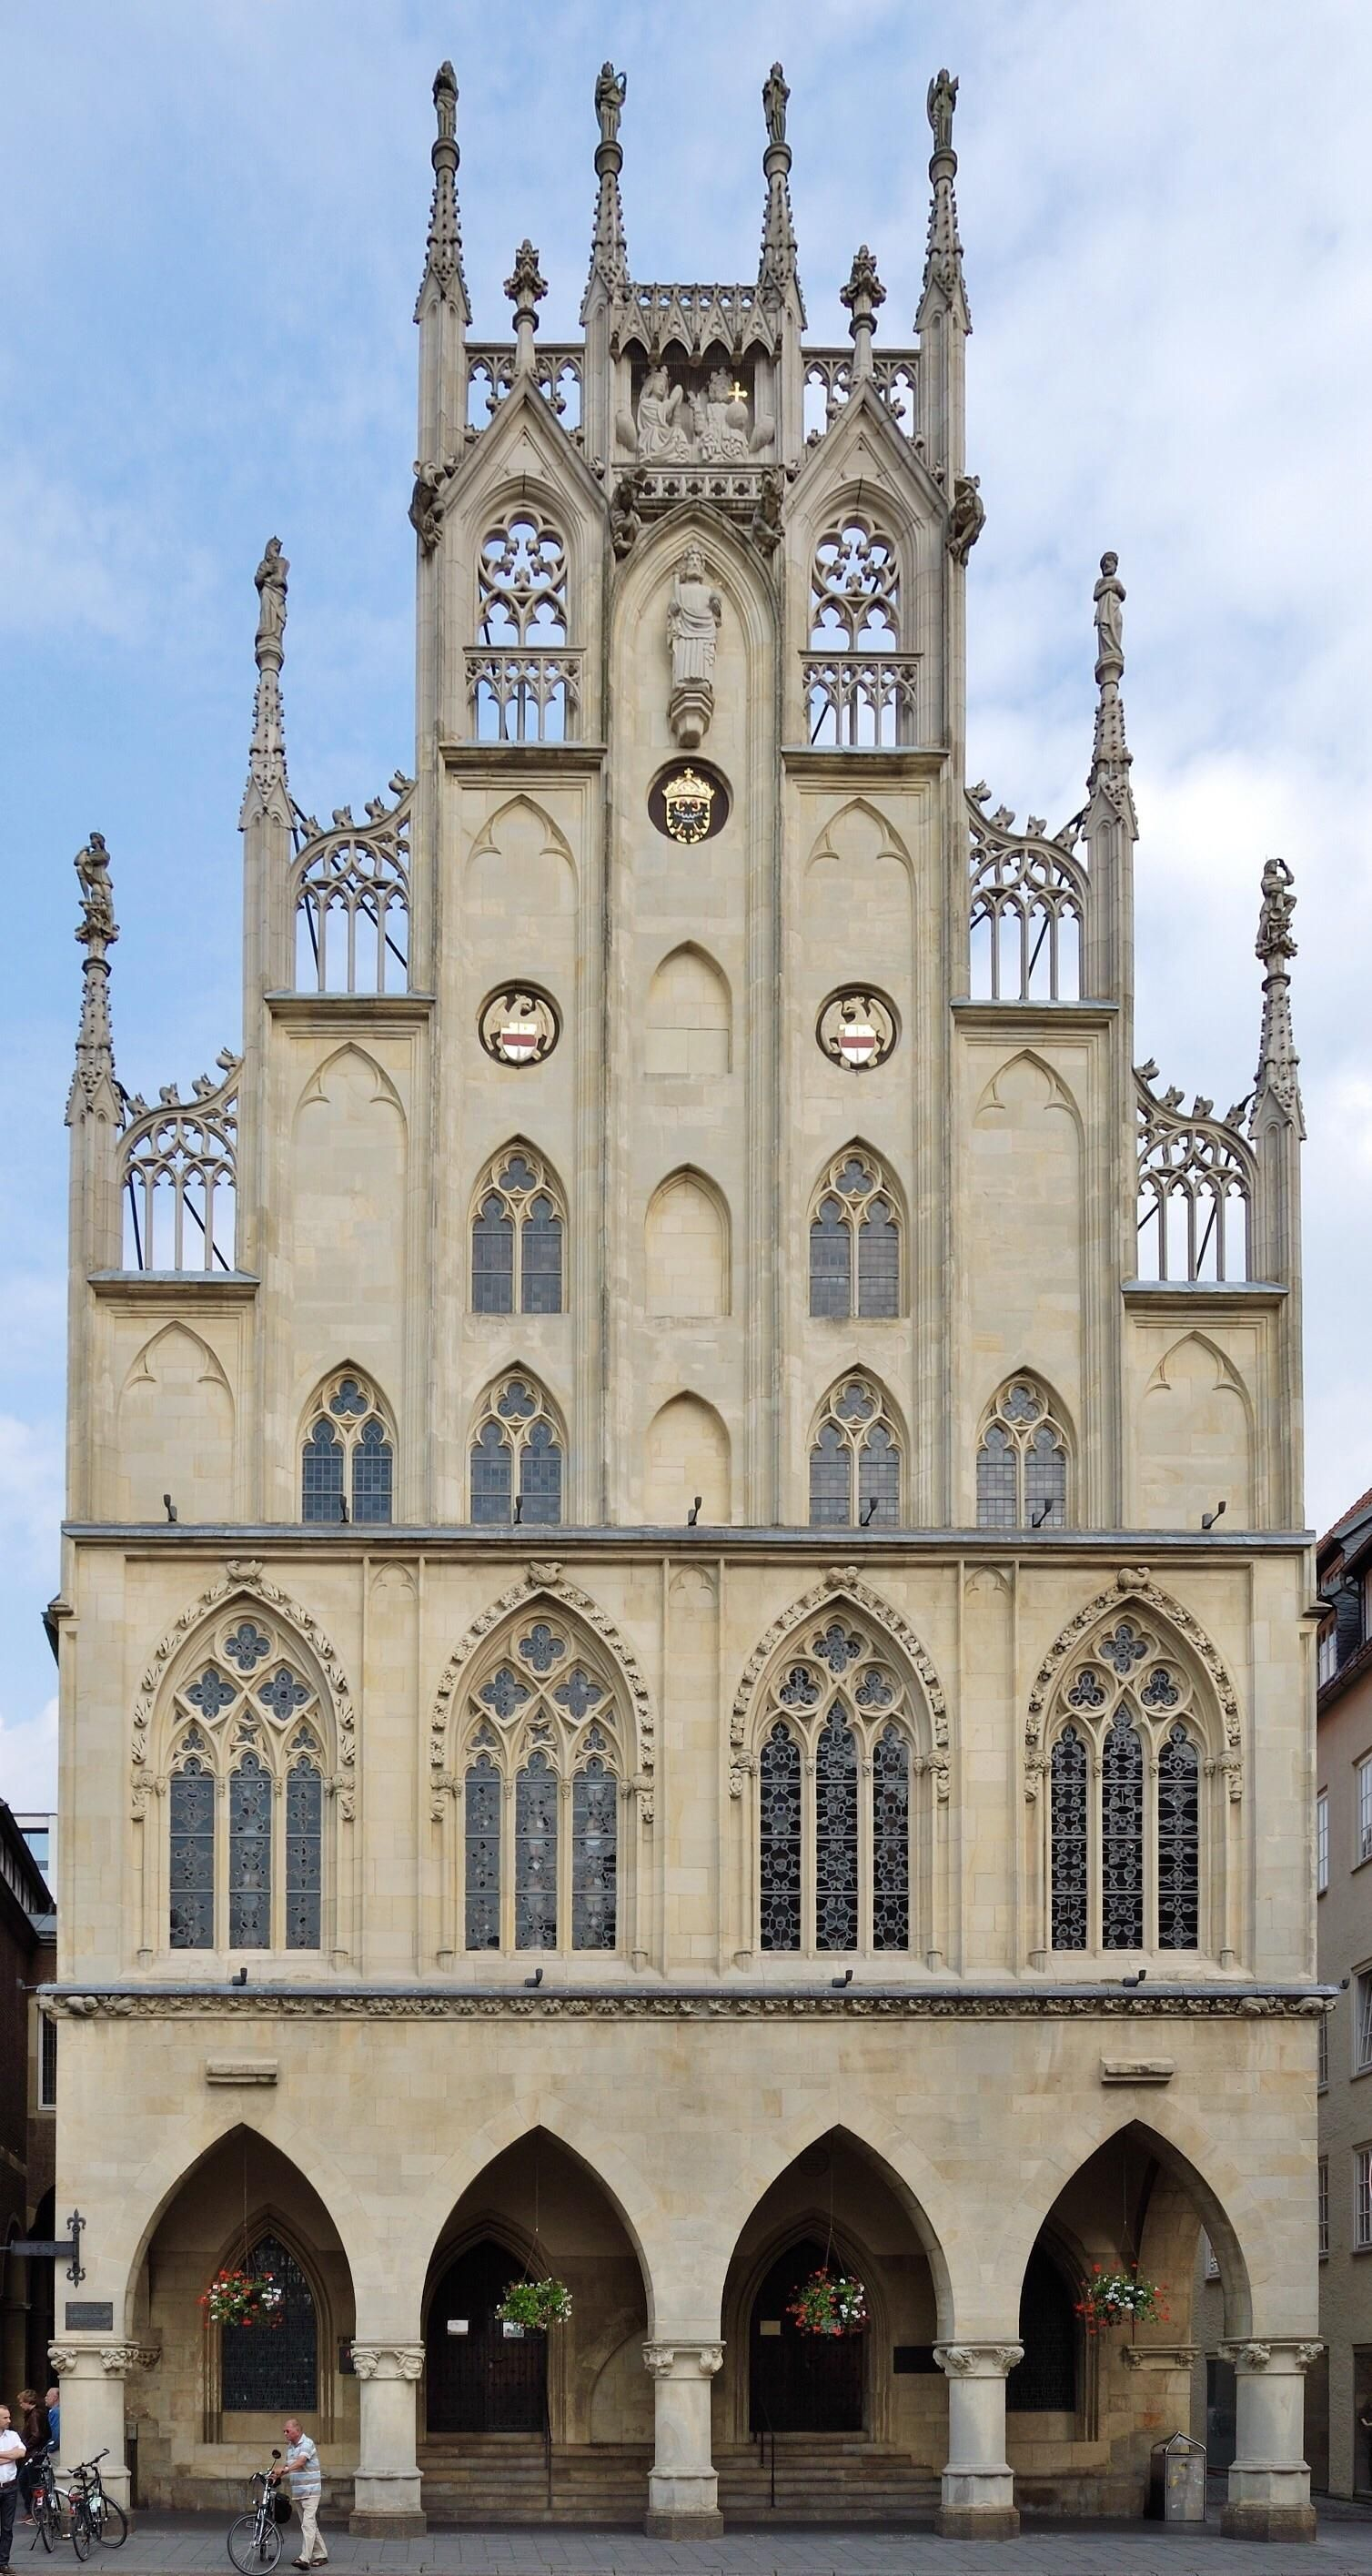 The Gothic City Hall Of Munster Germany 14th Century